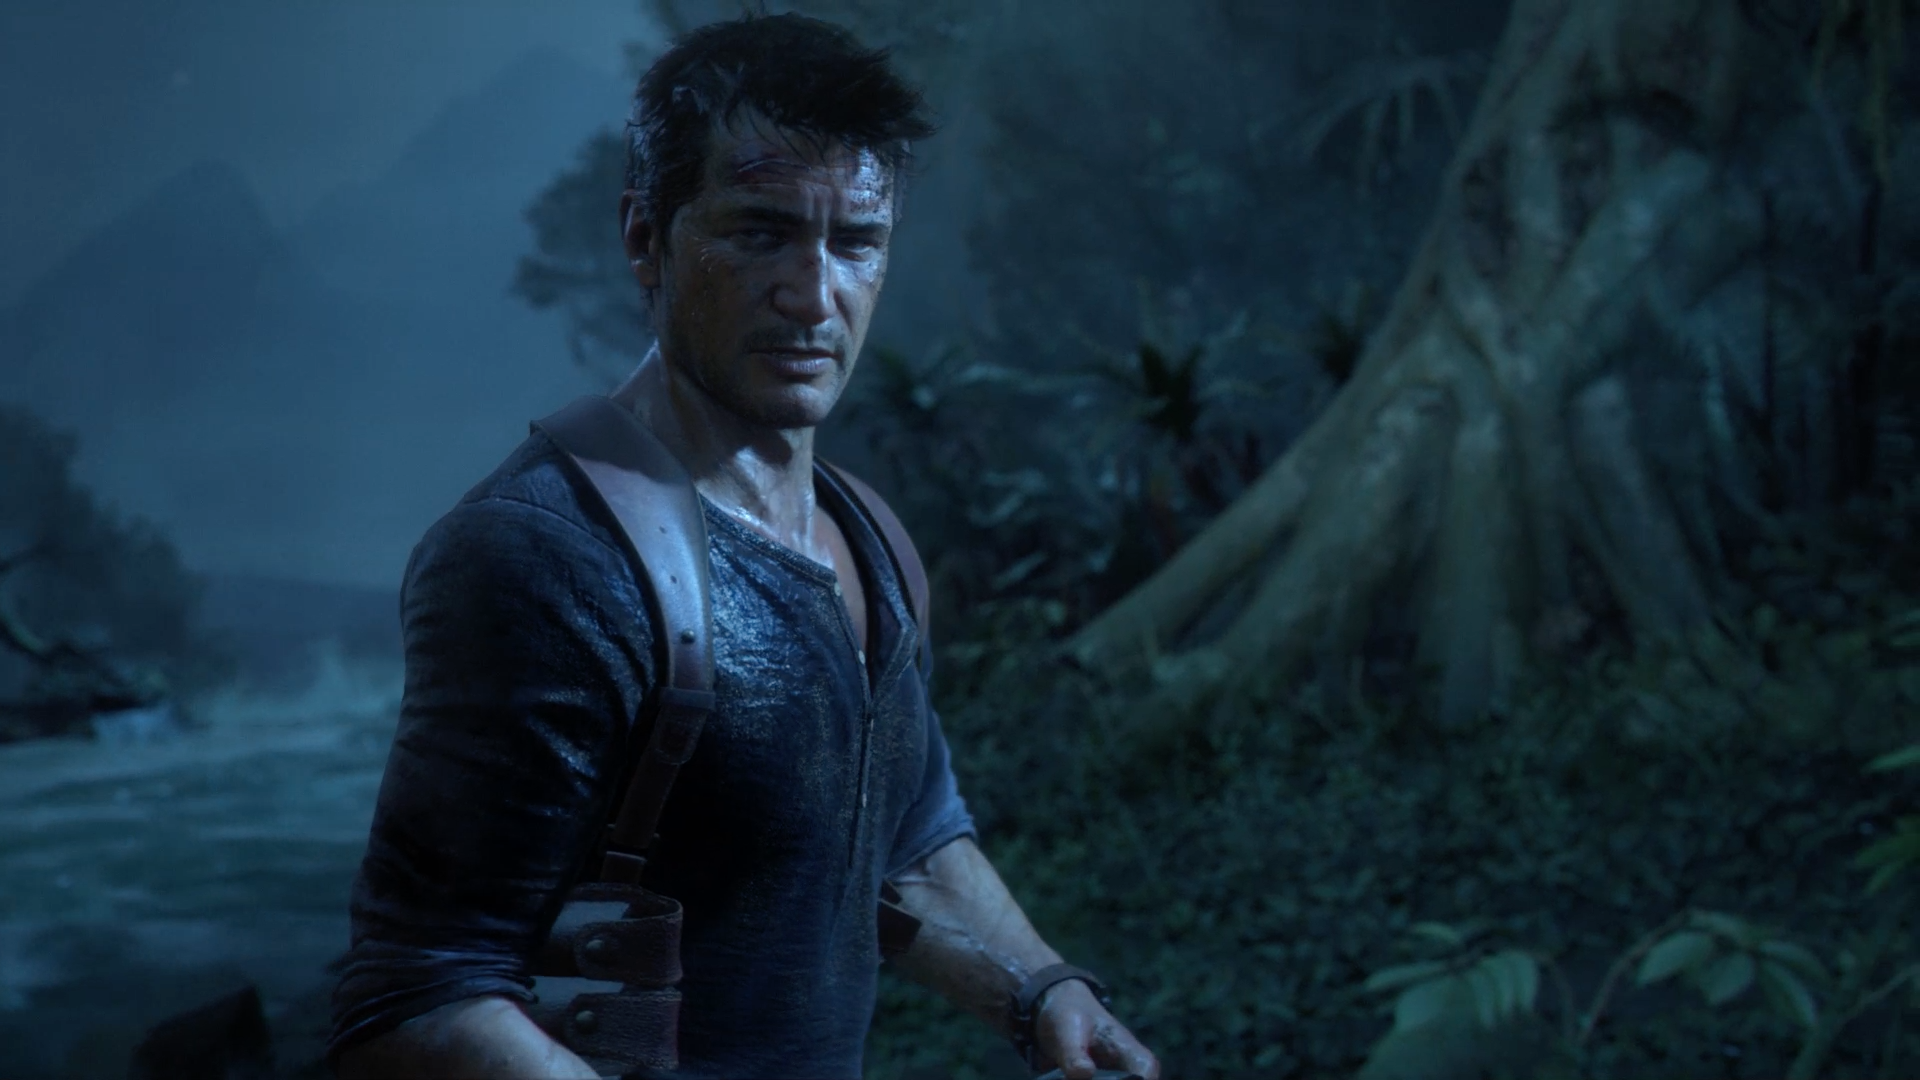 Uncharted 4: A Thief's End Wins Best Game At BAFTA Awards - Just Push Start